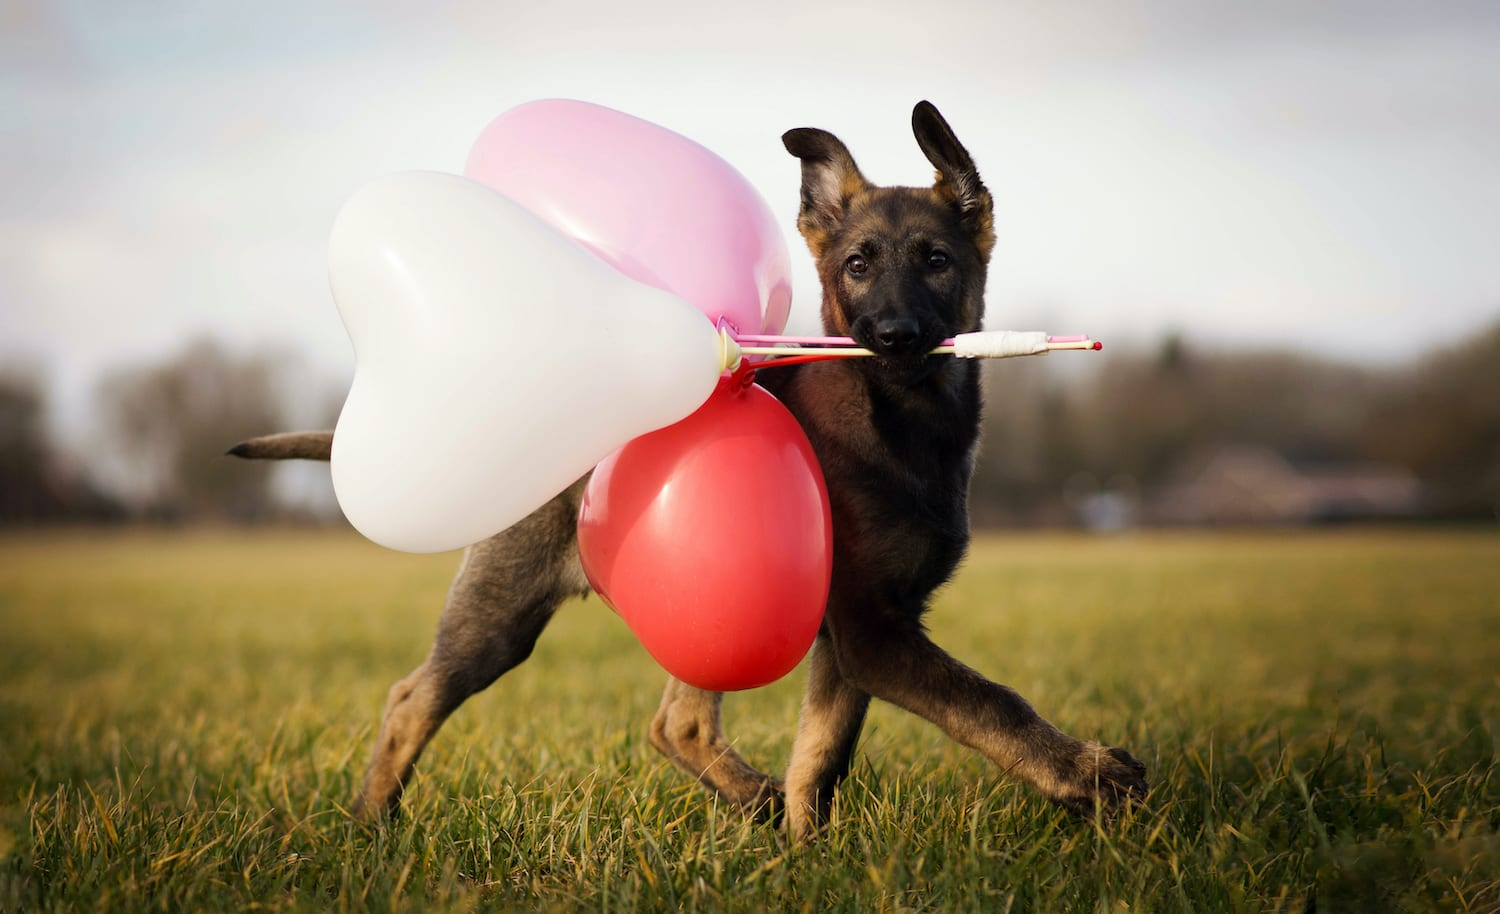 Waggy Walkys German Shepard Puppy Running with Valentines Day Balloons in His Mouth